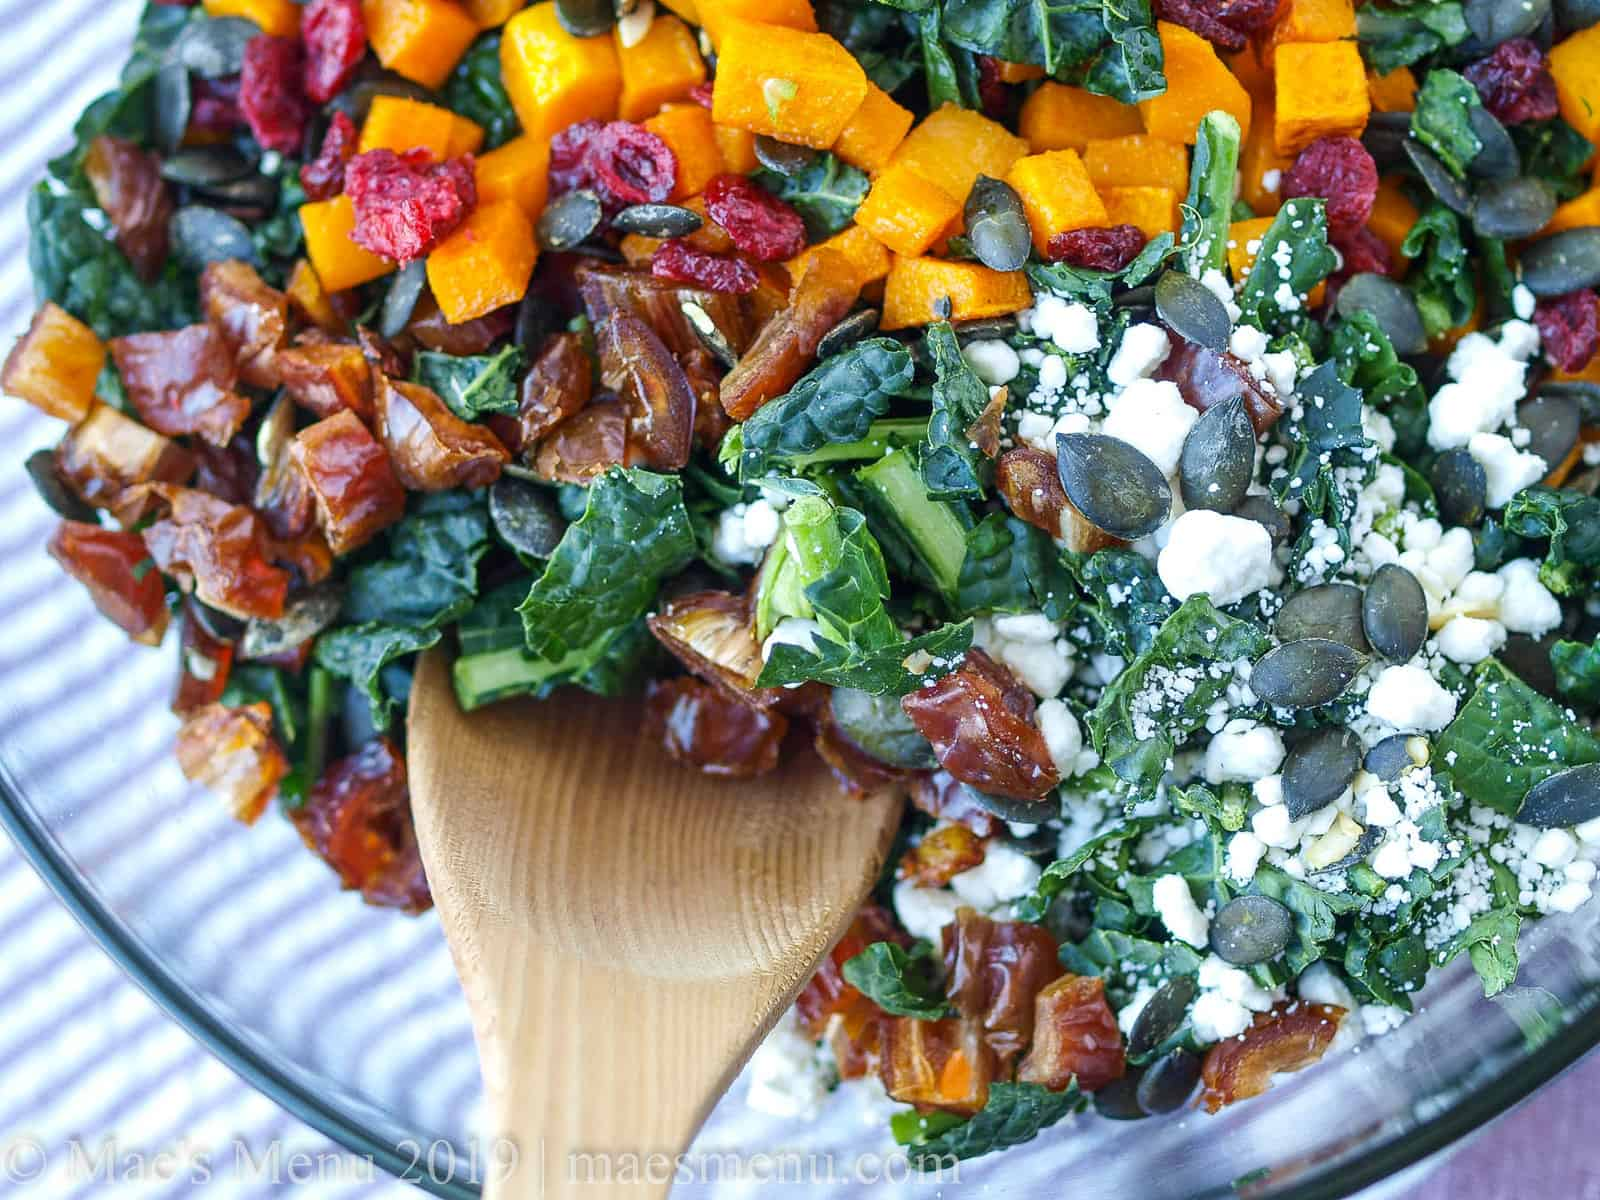 An overhead Up-close shot of lacinato kale with roasted butternut squash, the perfect holiday kale salad.